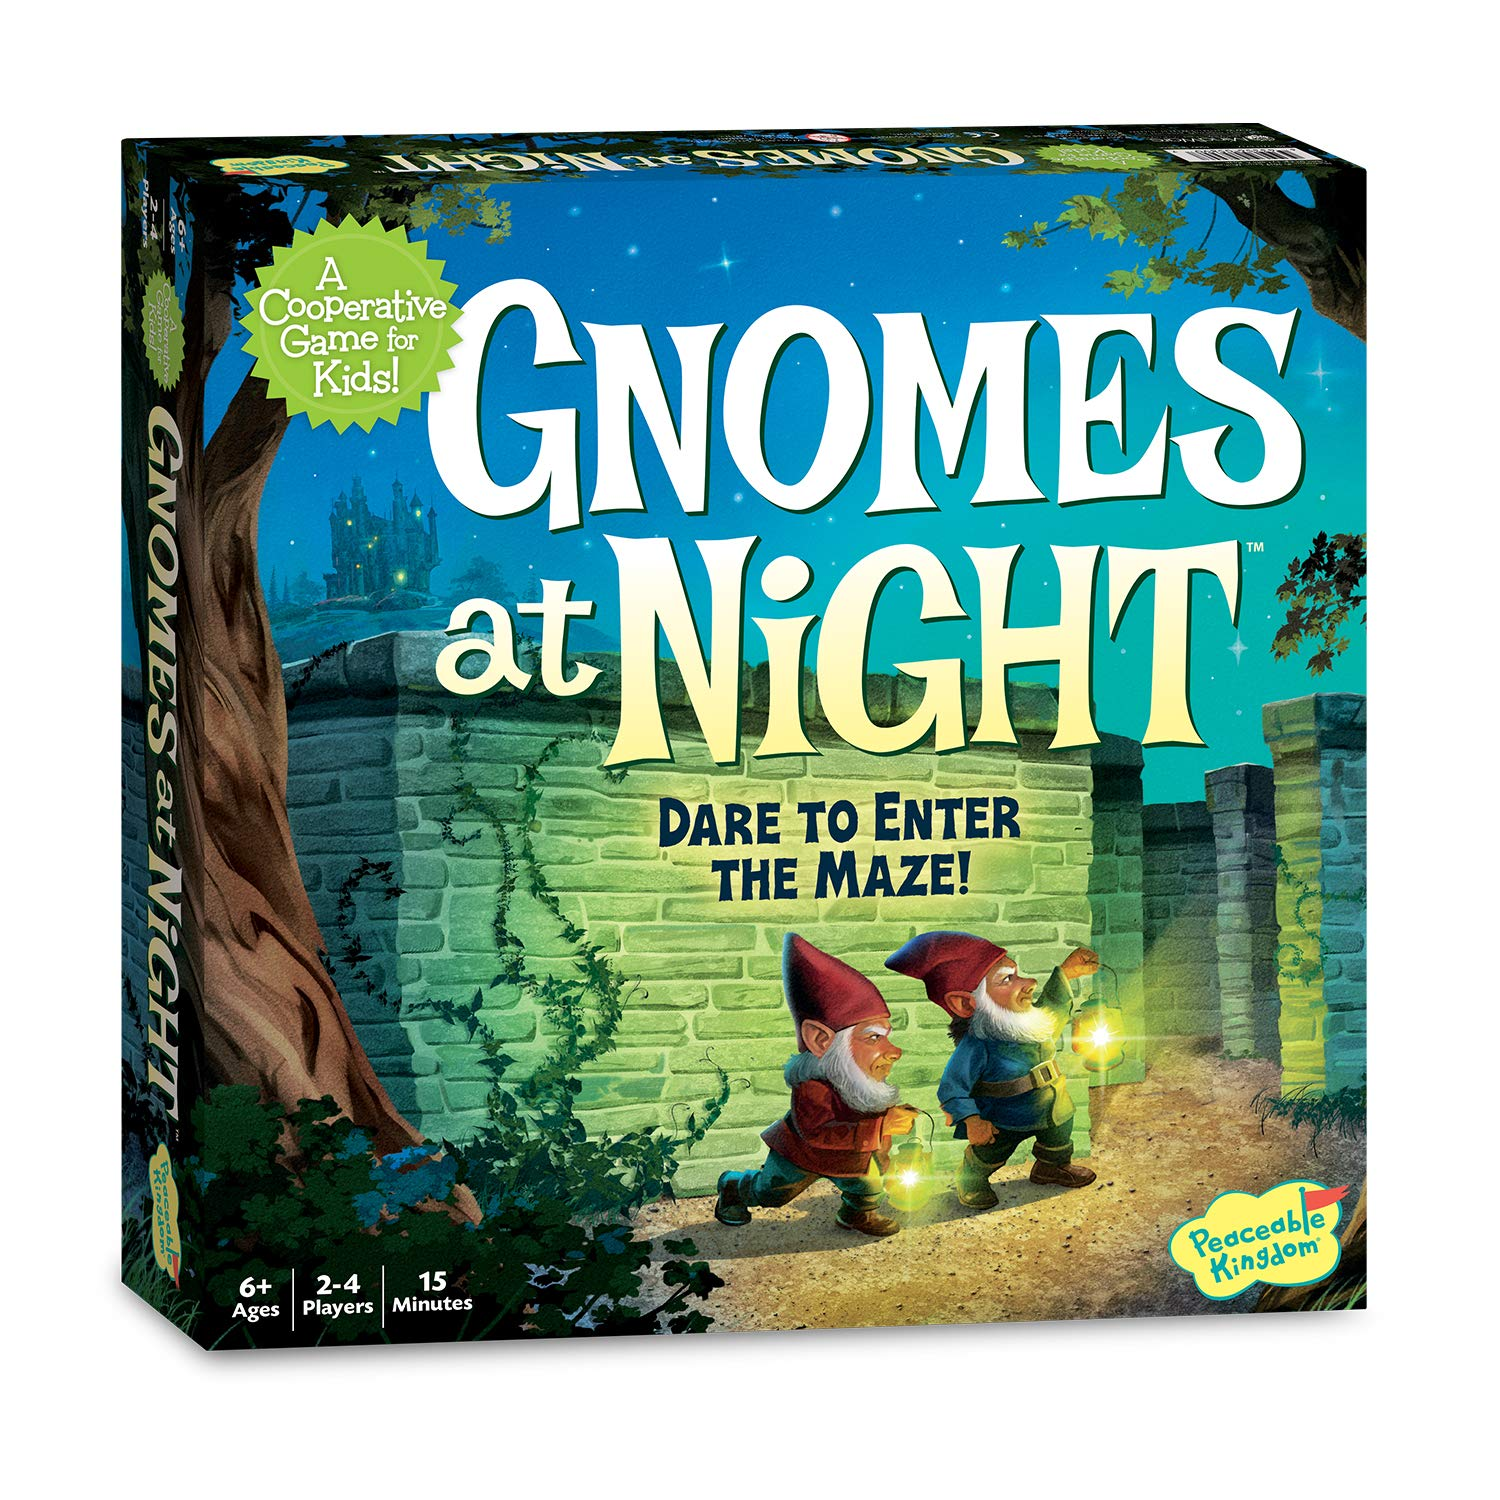 Enter for a chance to win the Board Game Gnomes at Night Giveaway Image